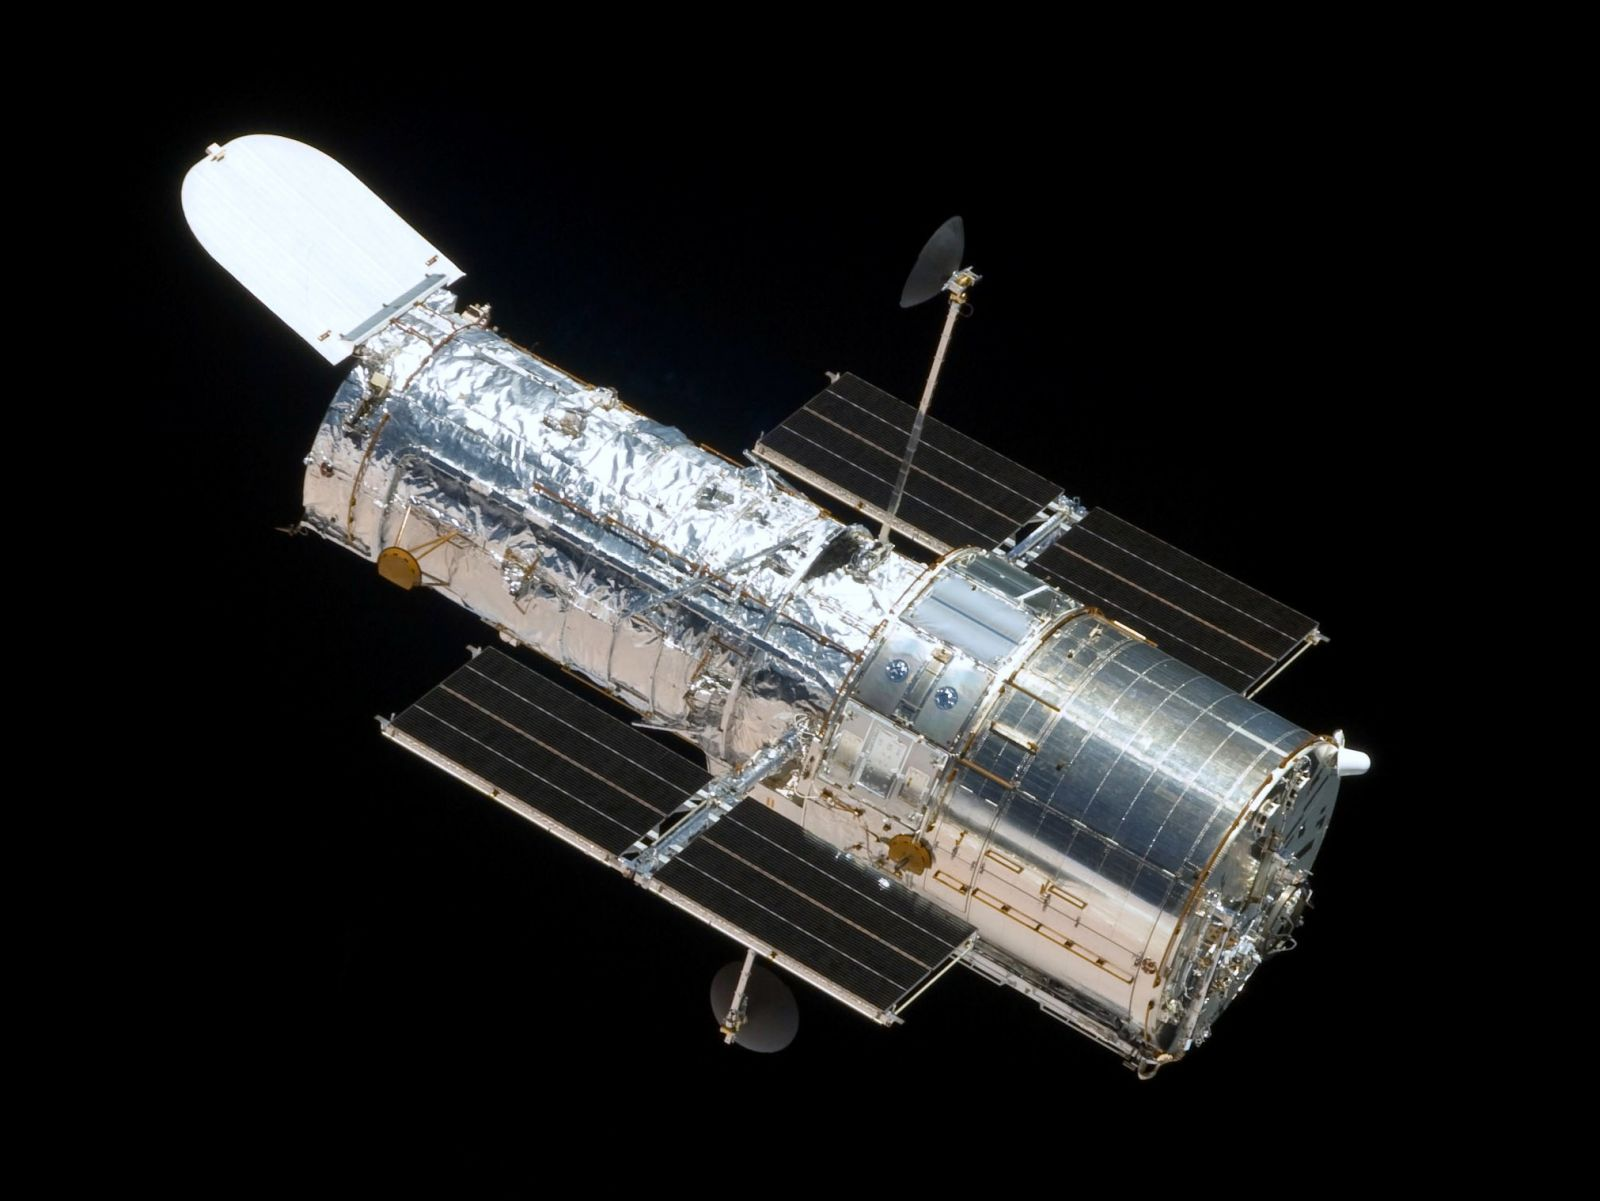 The Hubble Space Telescope, imaged during its last servicing mission in 2009. Credit: NASA